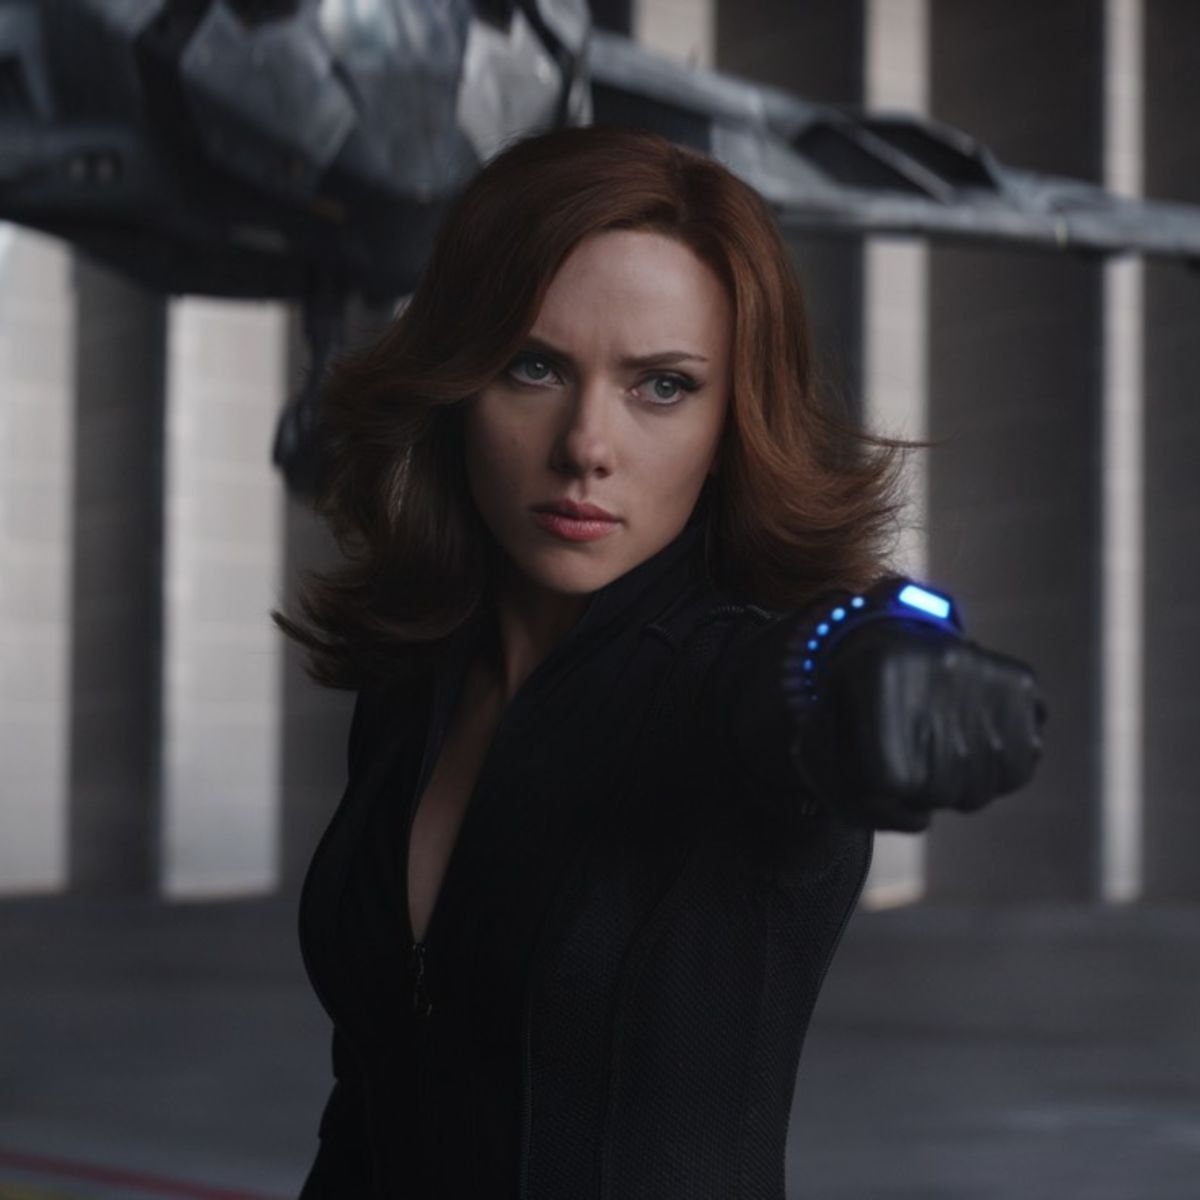 Marvel teams up with director Cate Shortland for stand-alone Black Widow movie